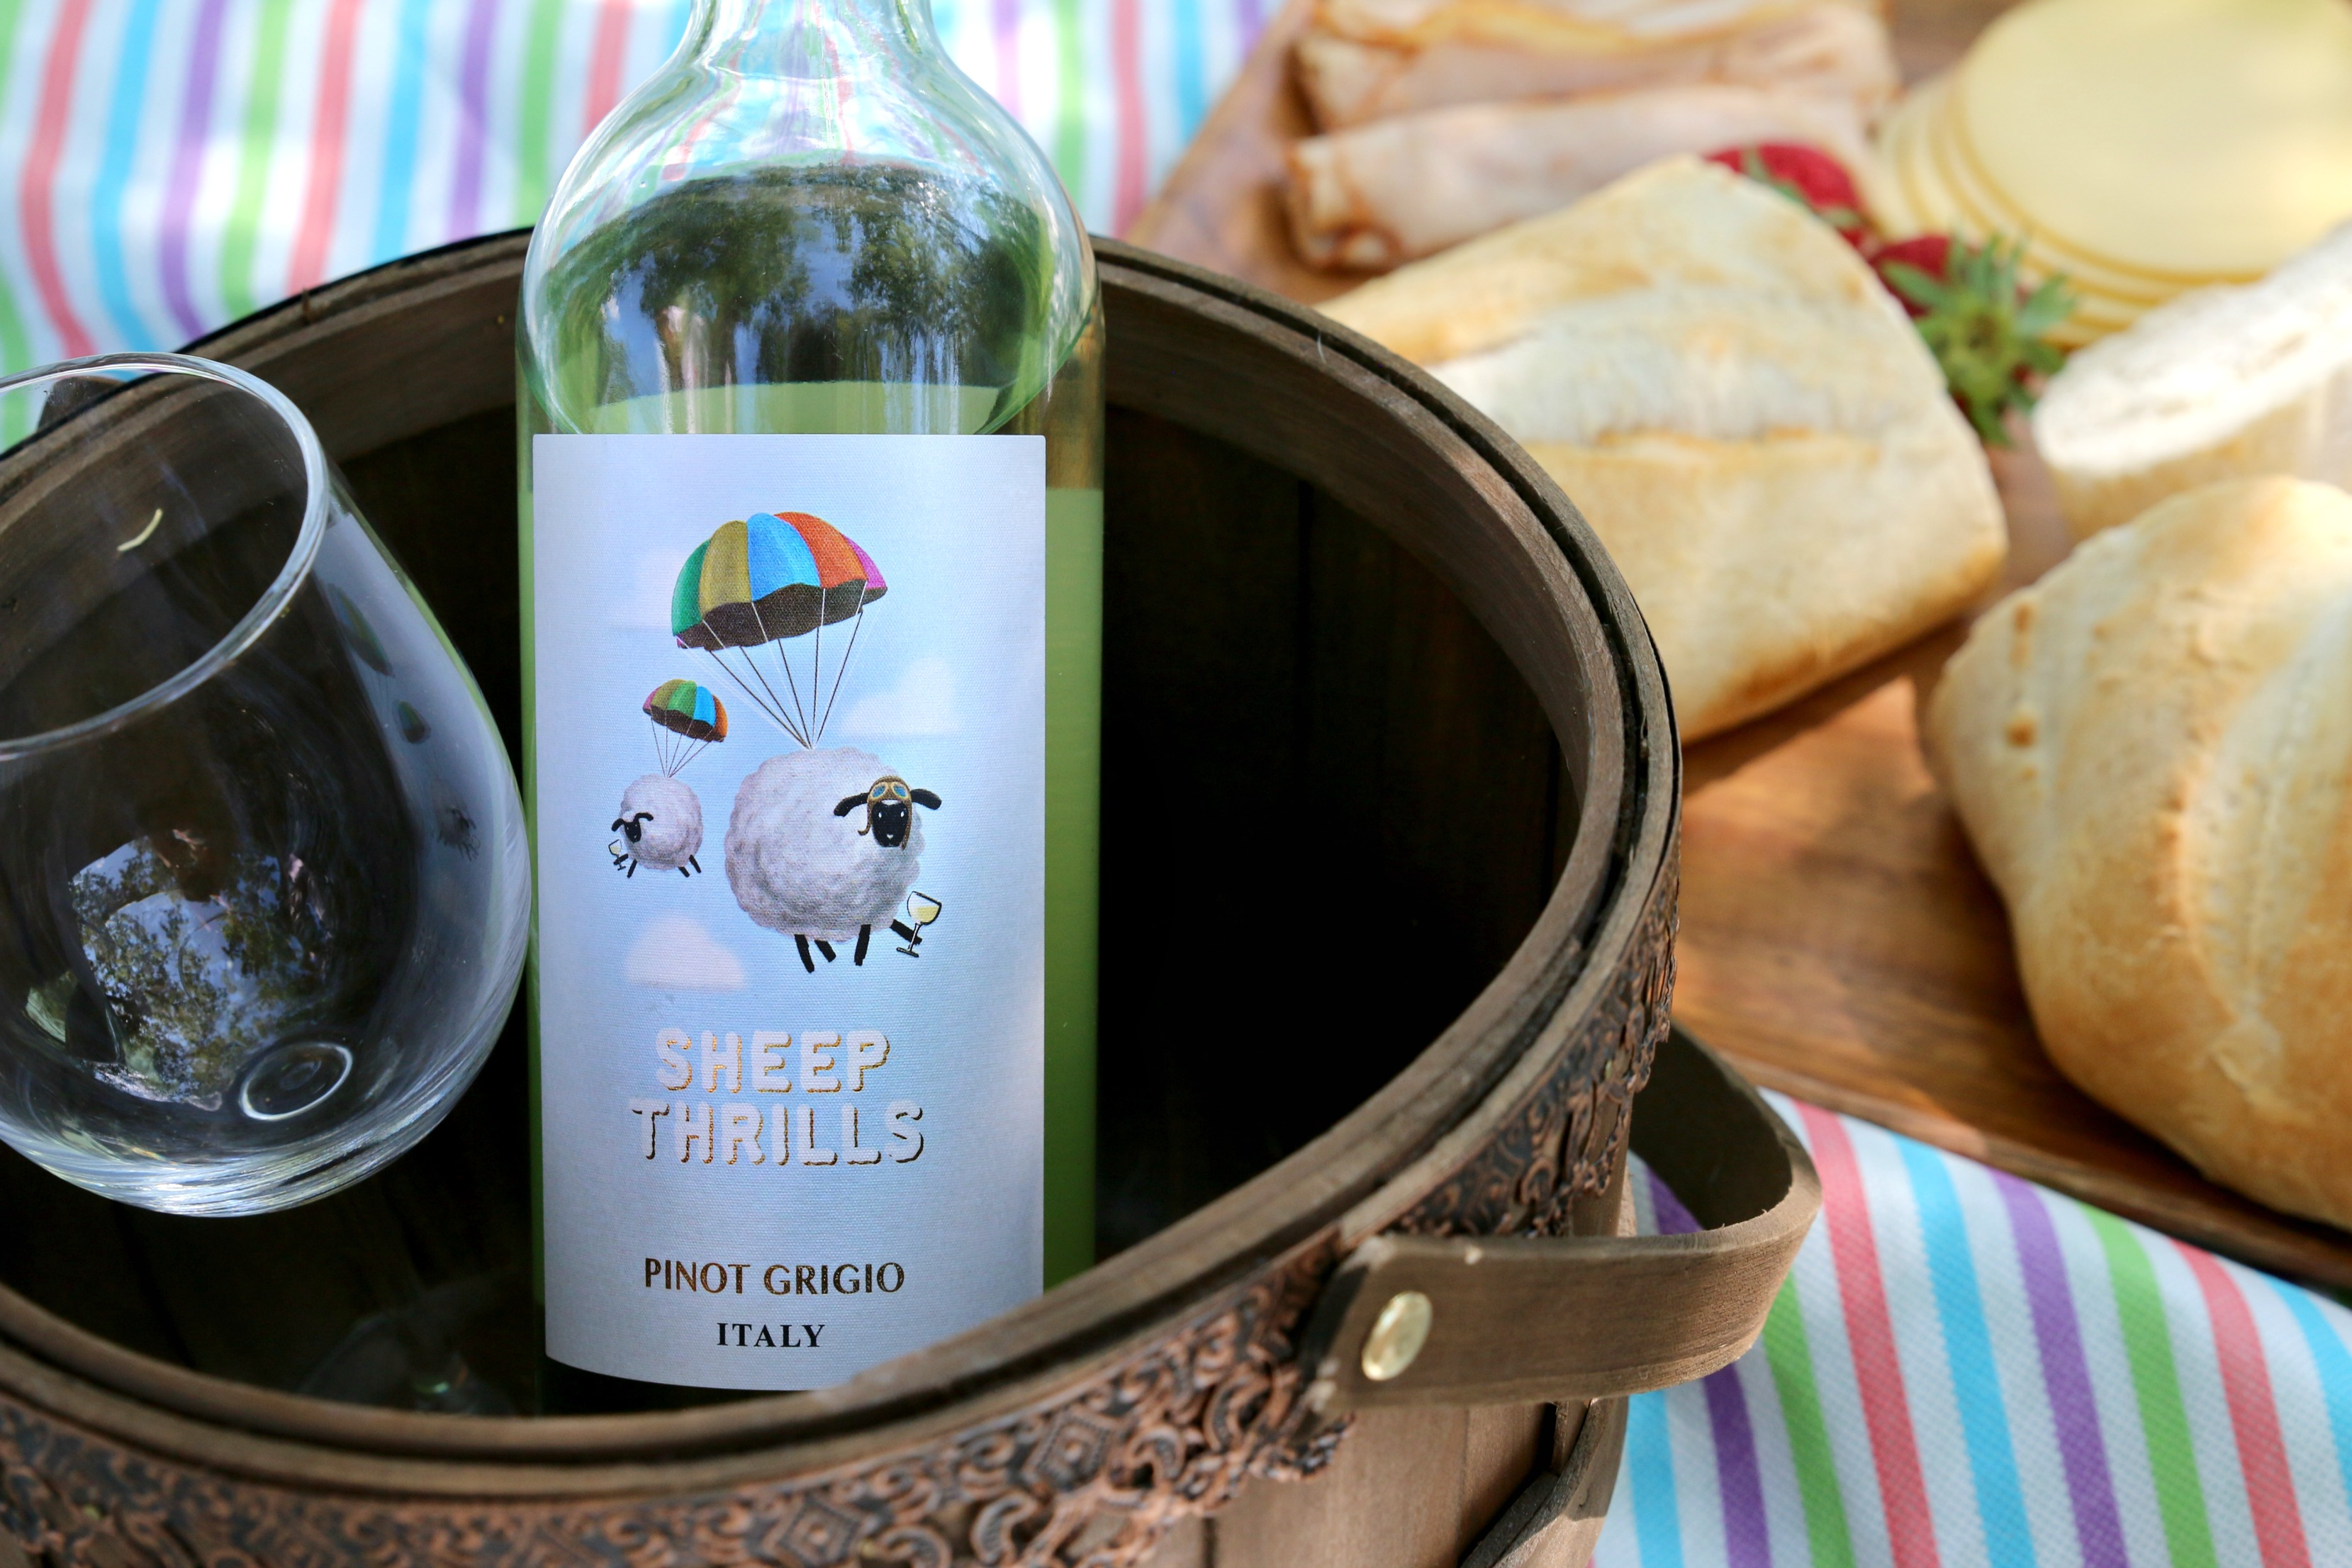 Sheep Thrills Pinot Grigio